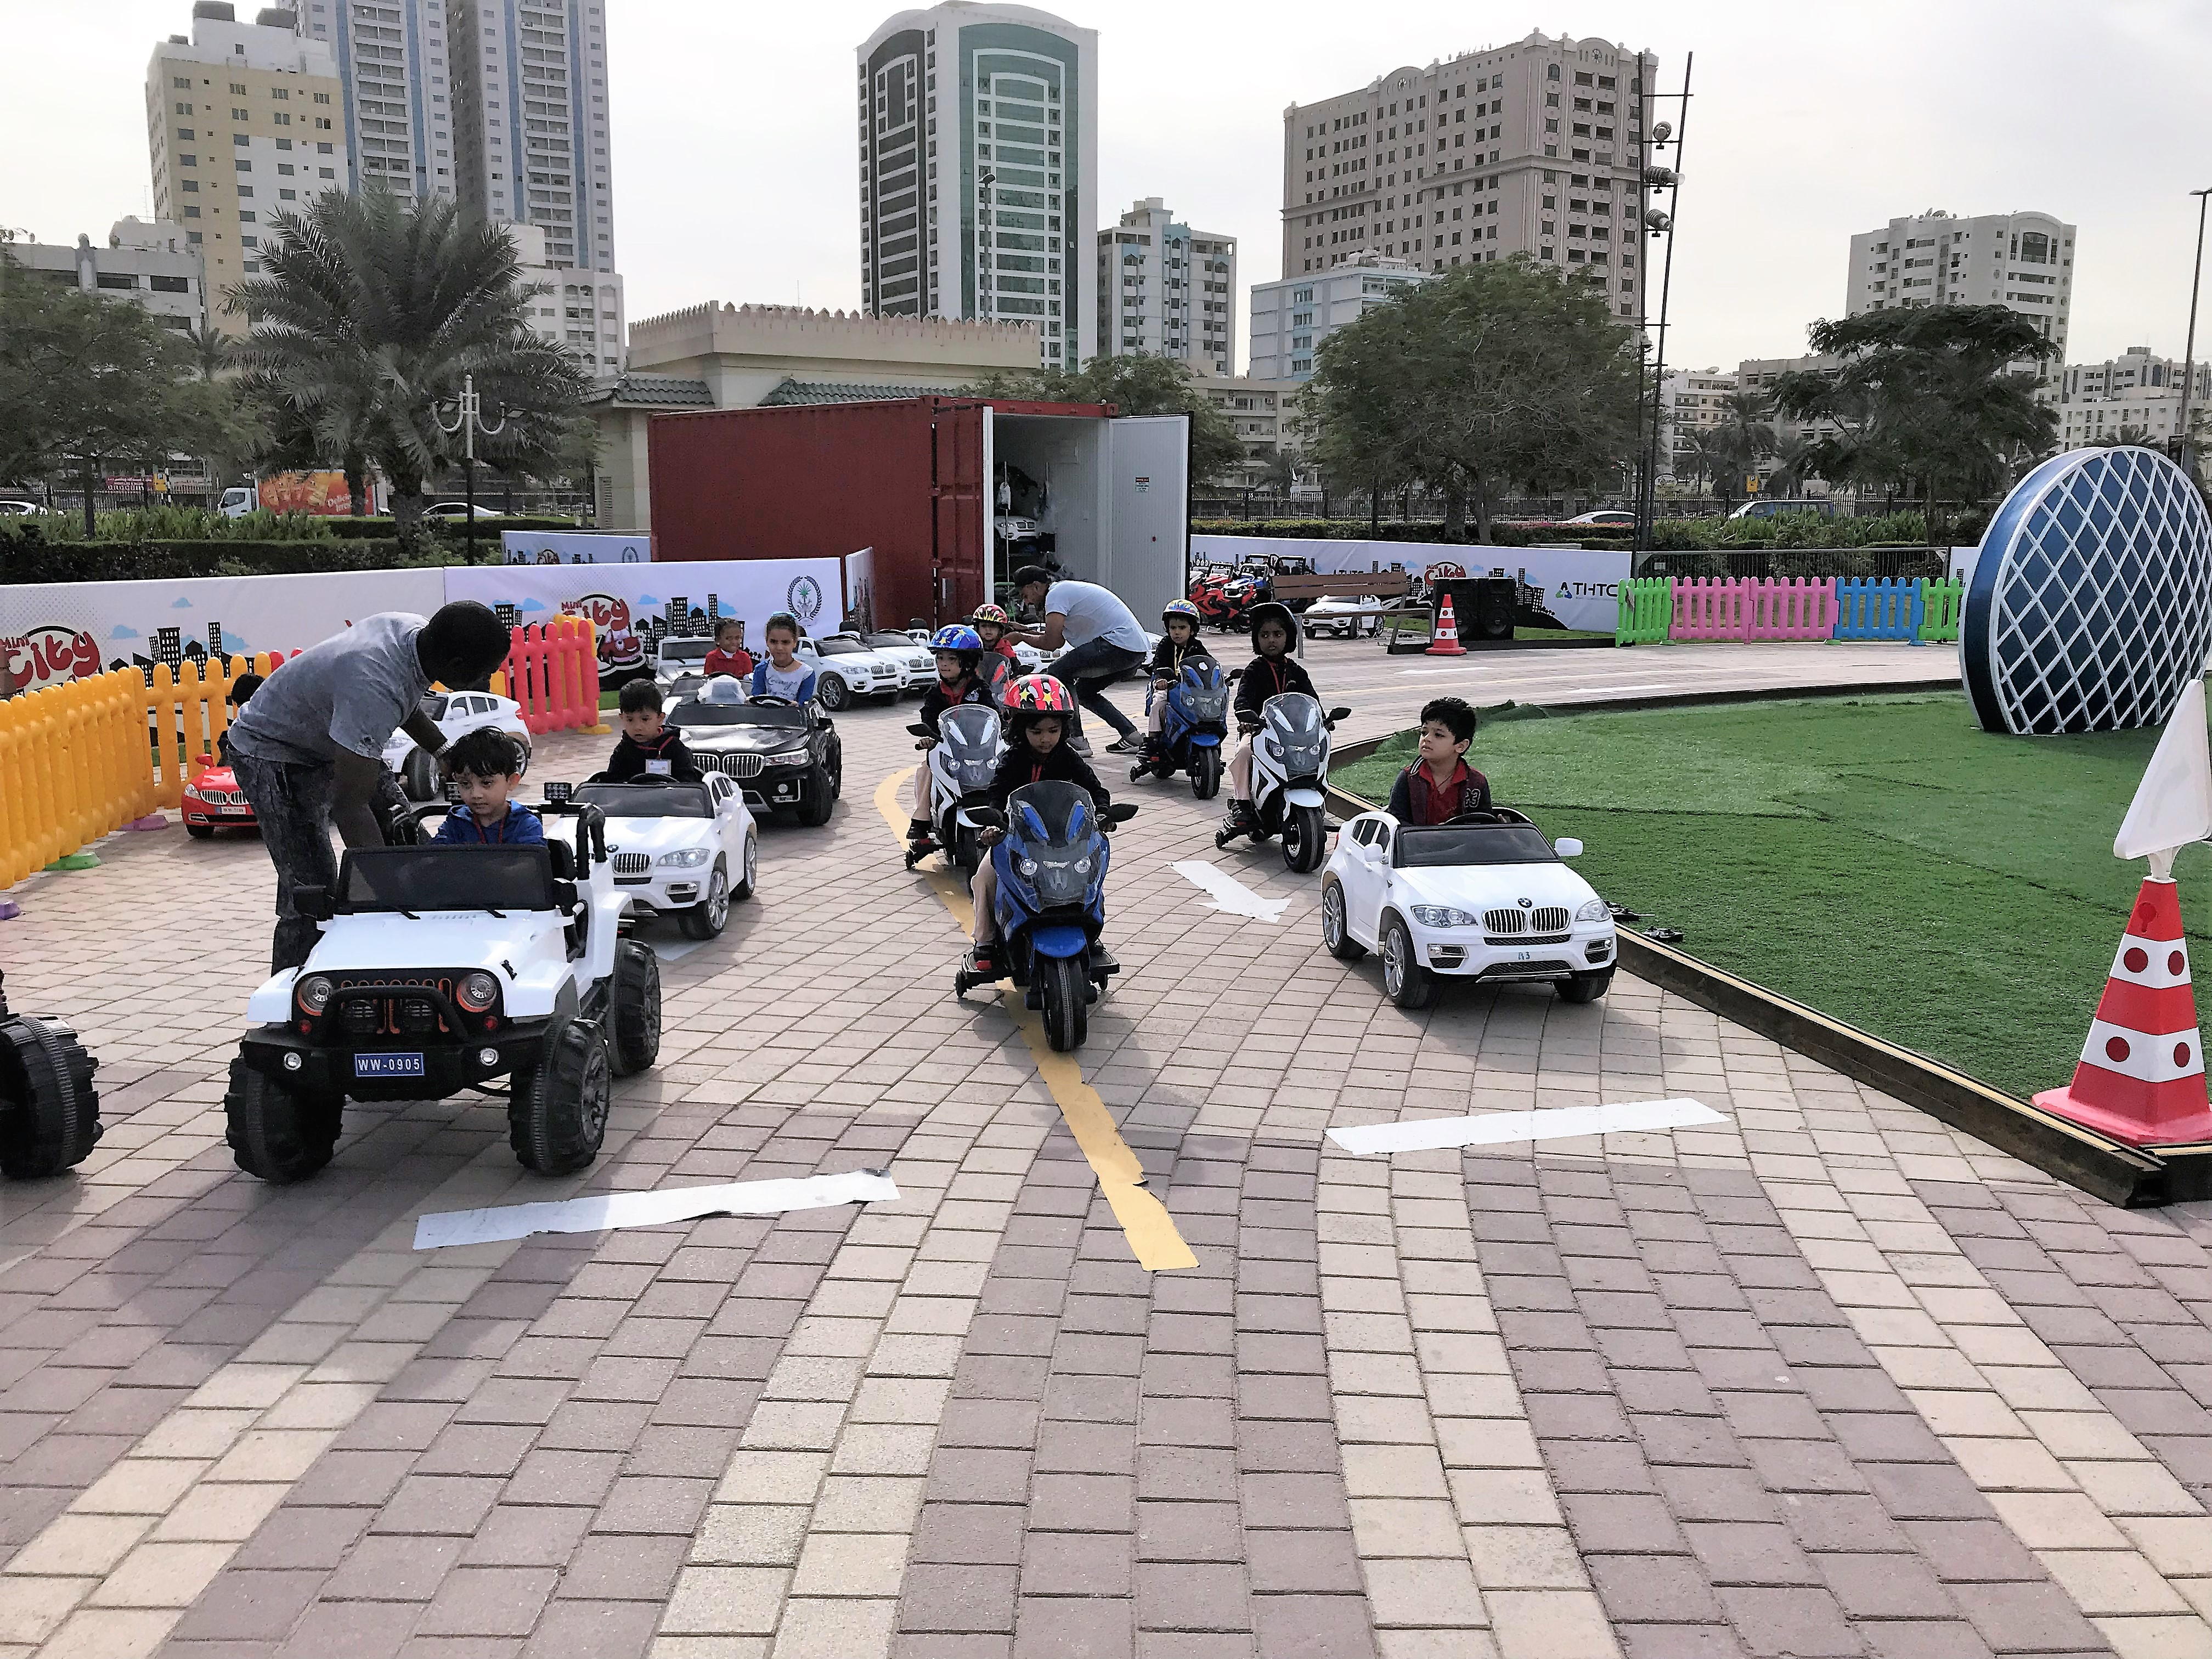 children learn road safety skills while having fun at al majaz waterfront